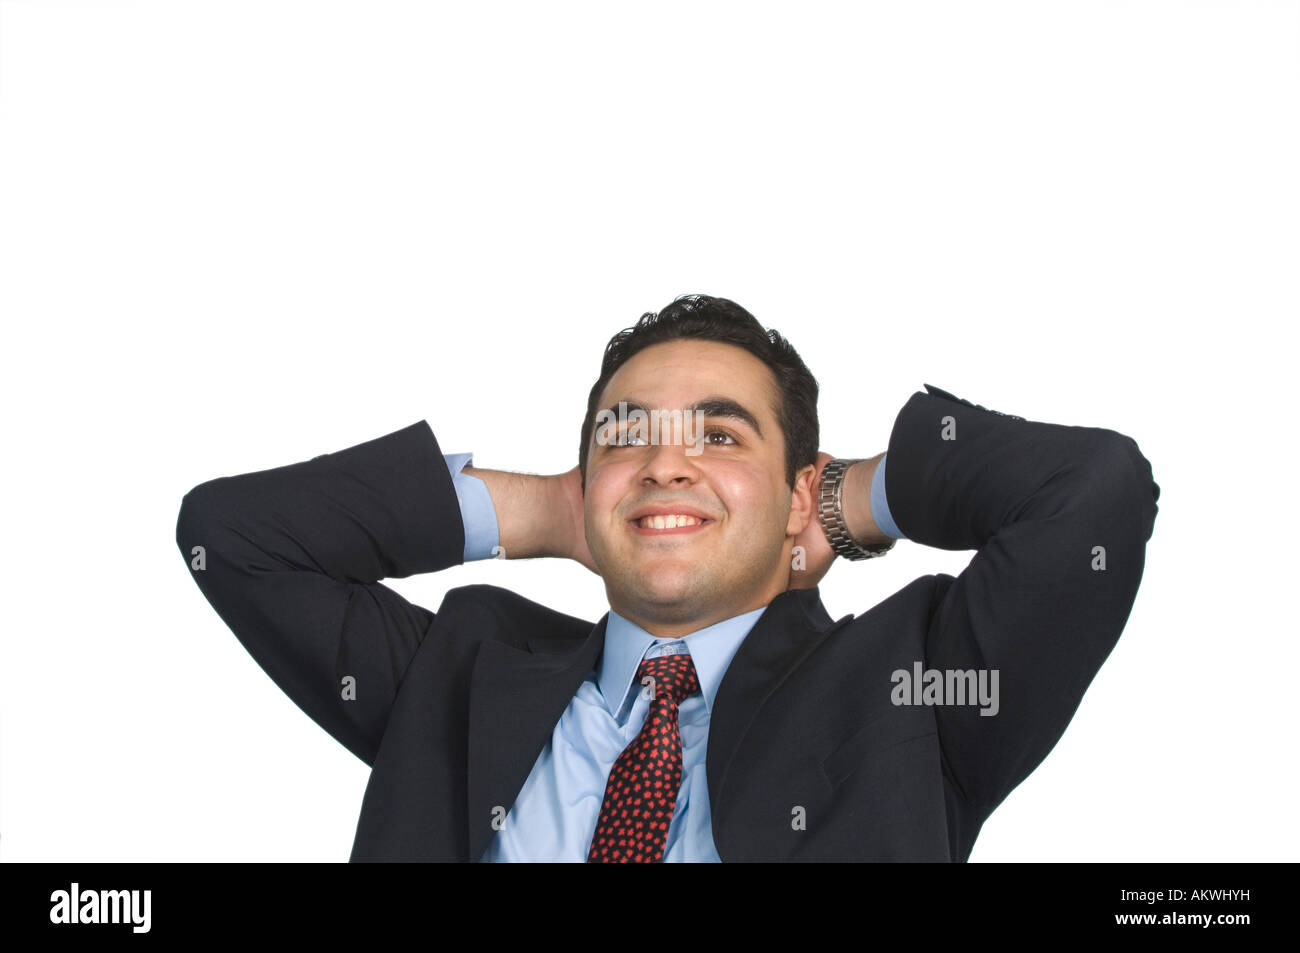 business man resting hands behind head - Stock Image